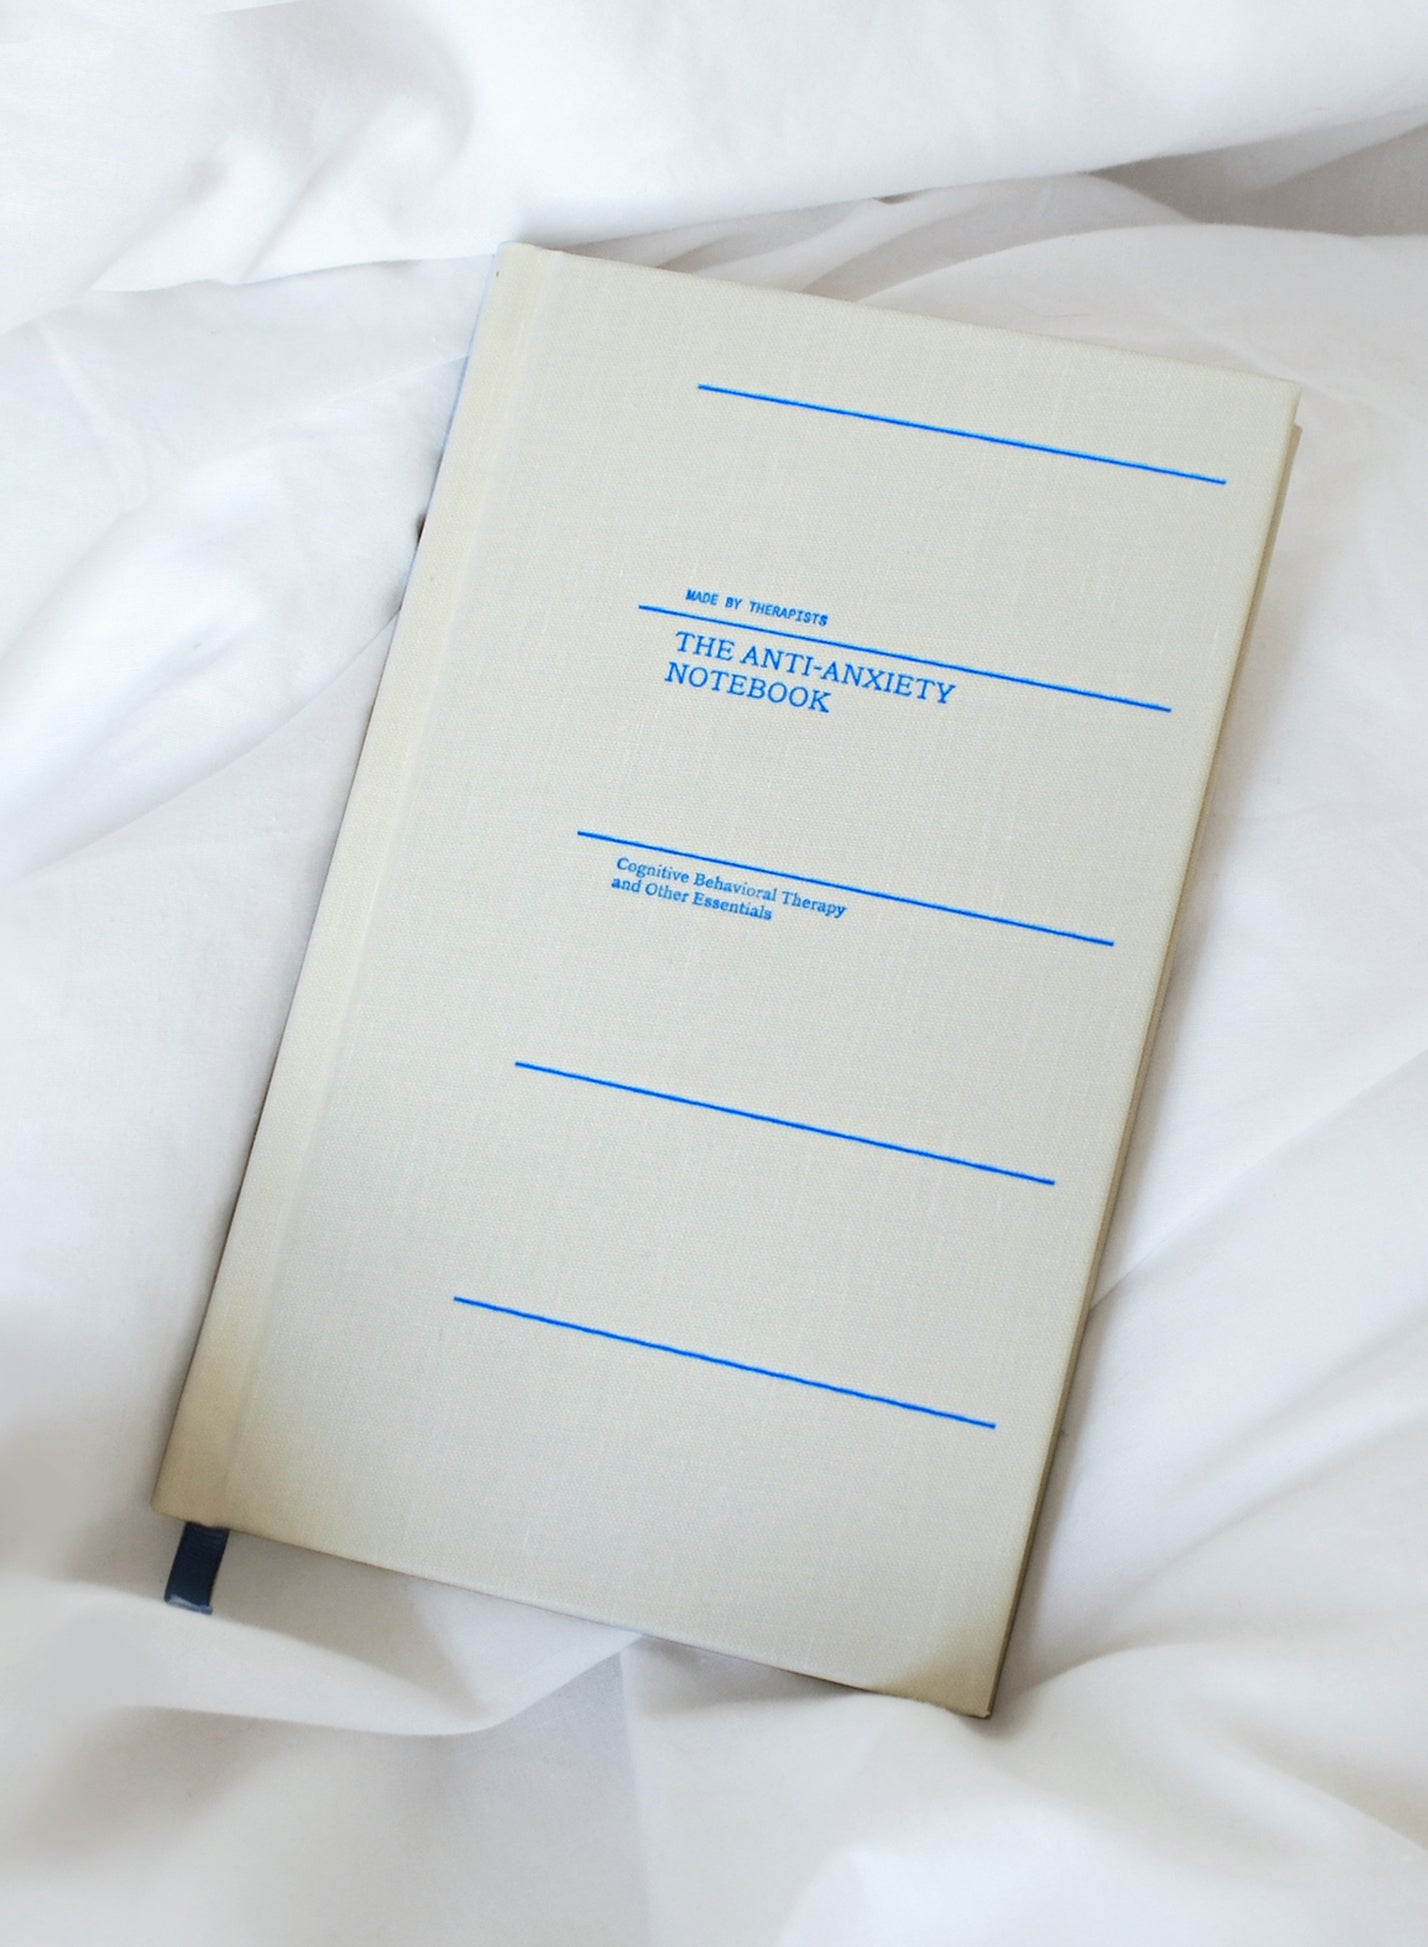 Therapy Notebook laying on bedsheets